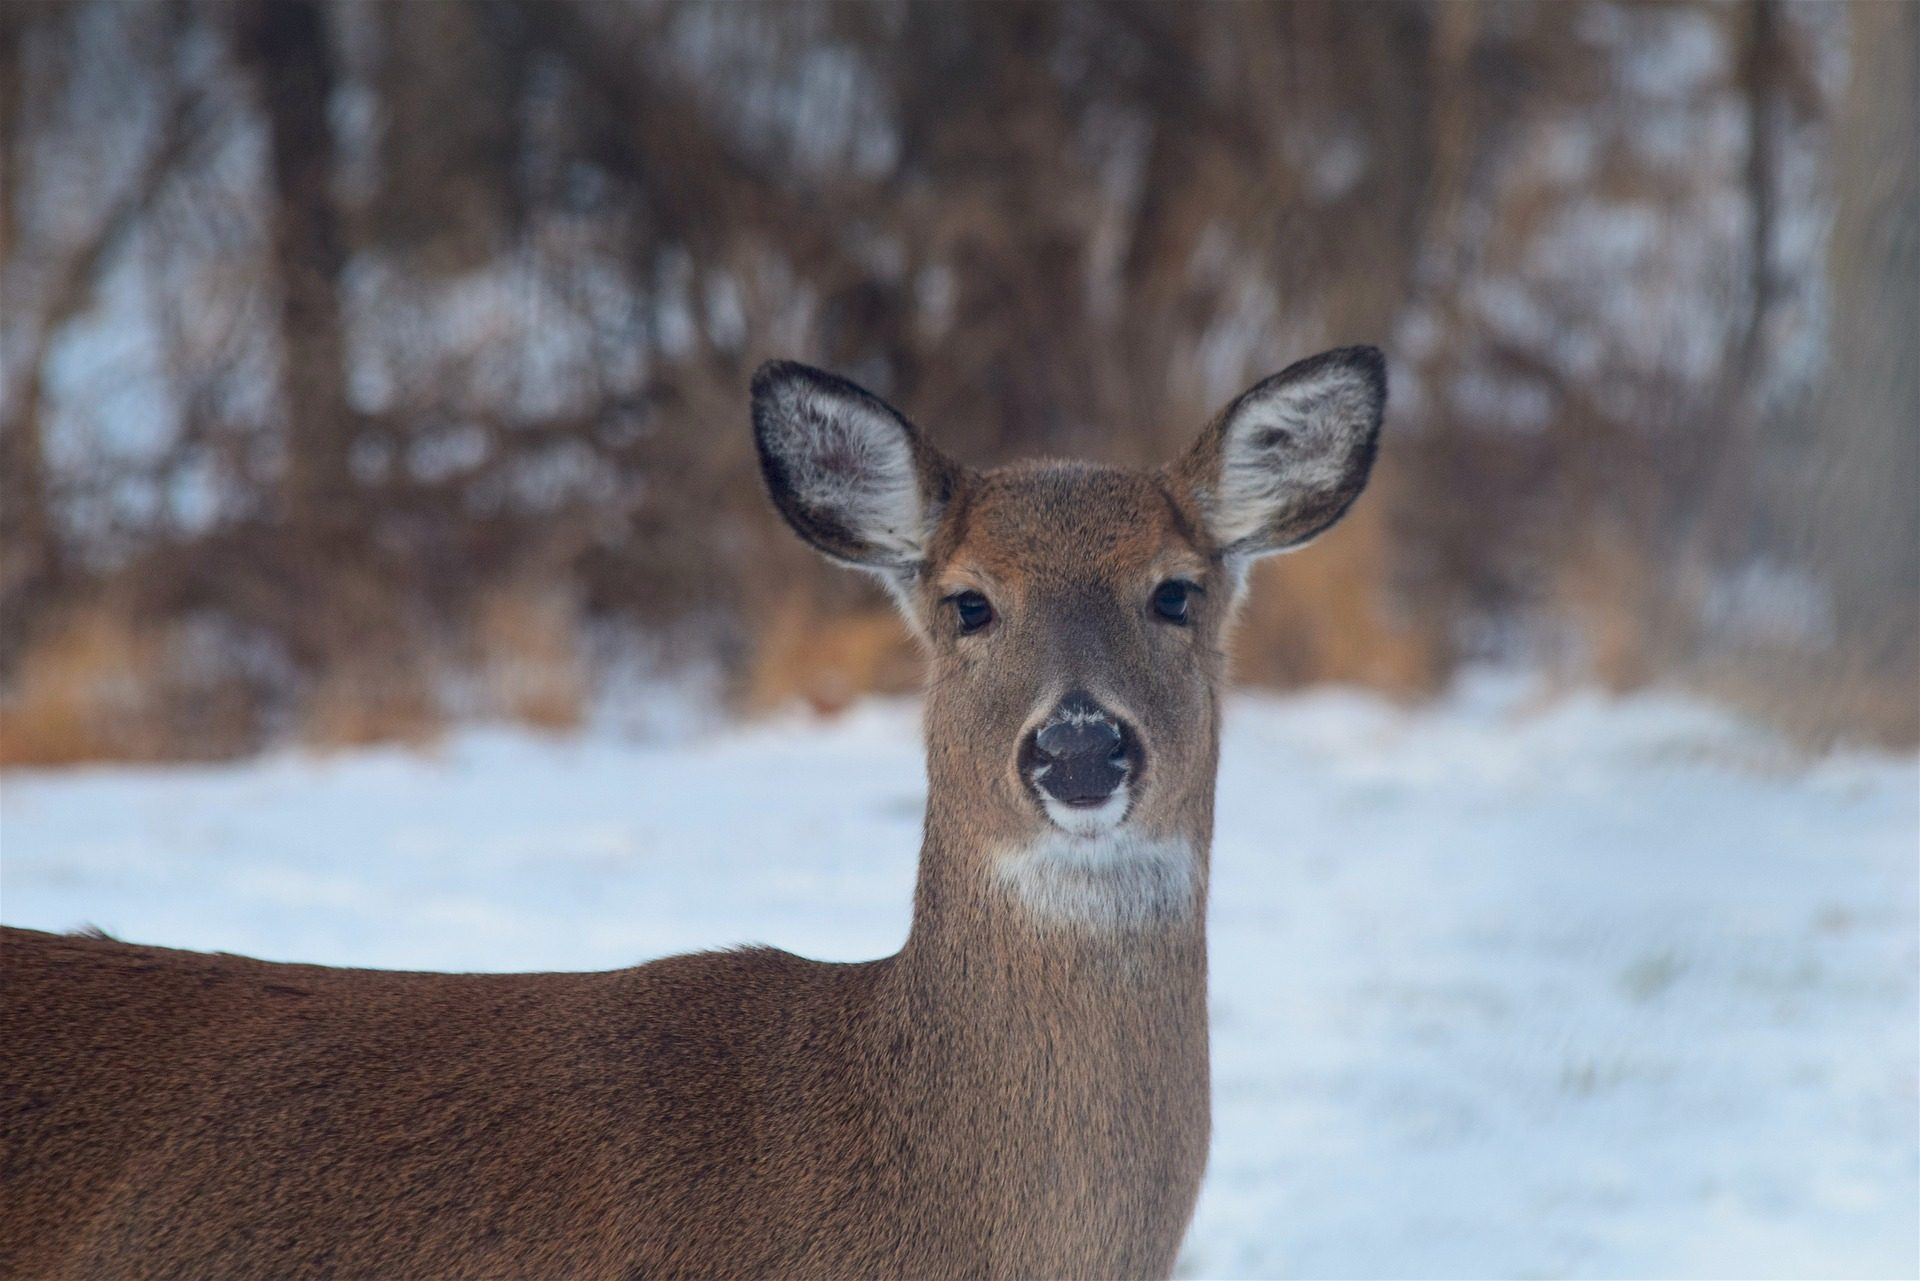 PA Father and Son Risk Lives Saving Deer [watch]